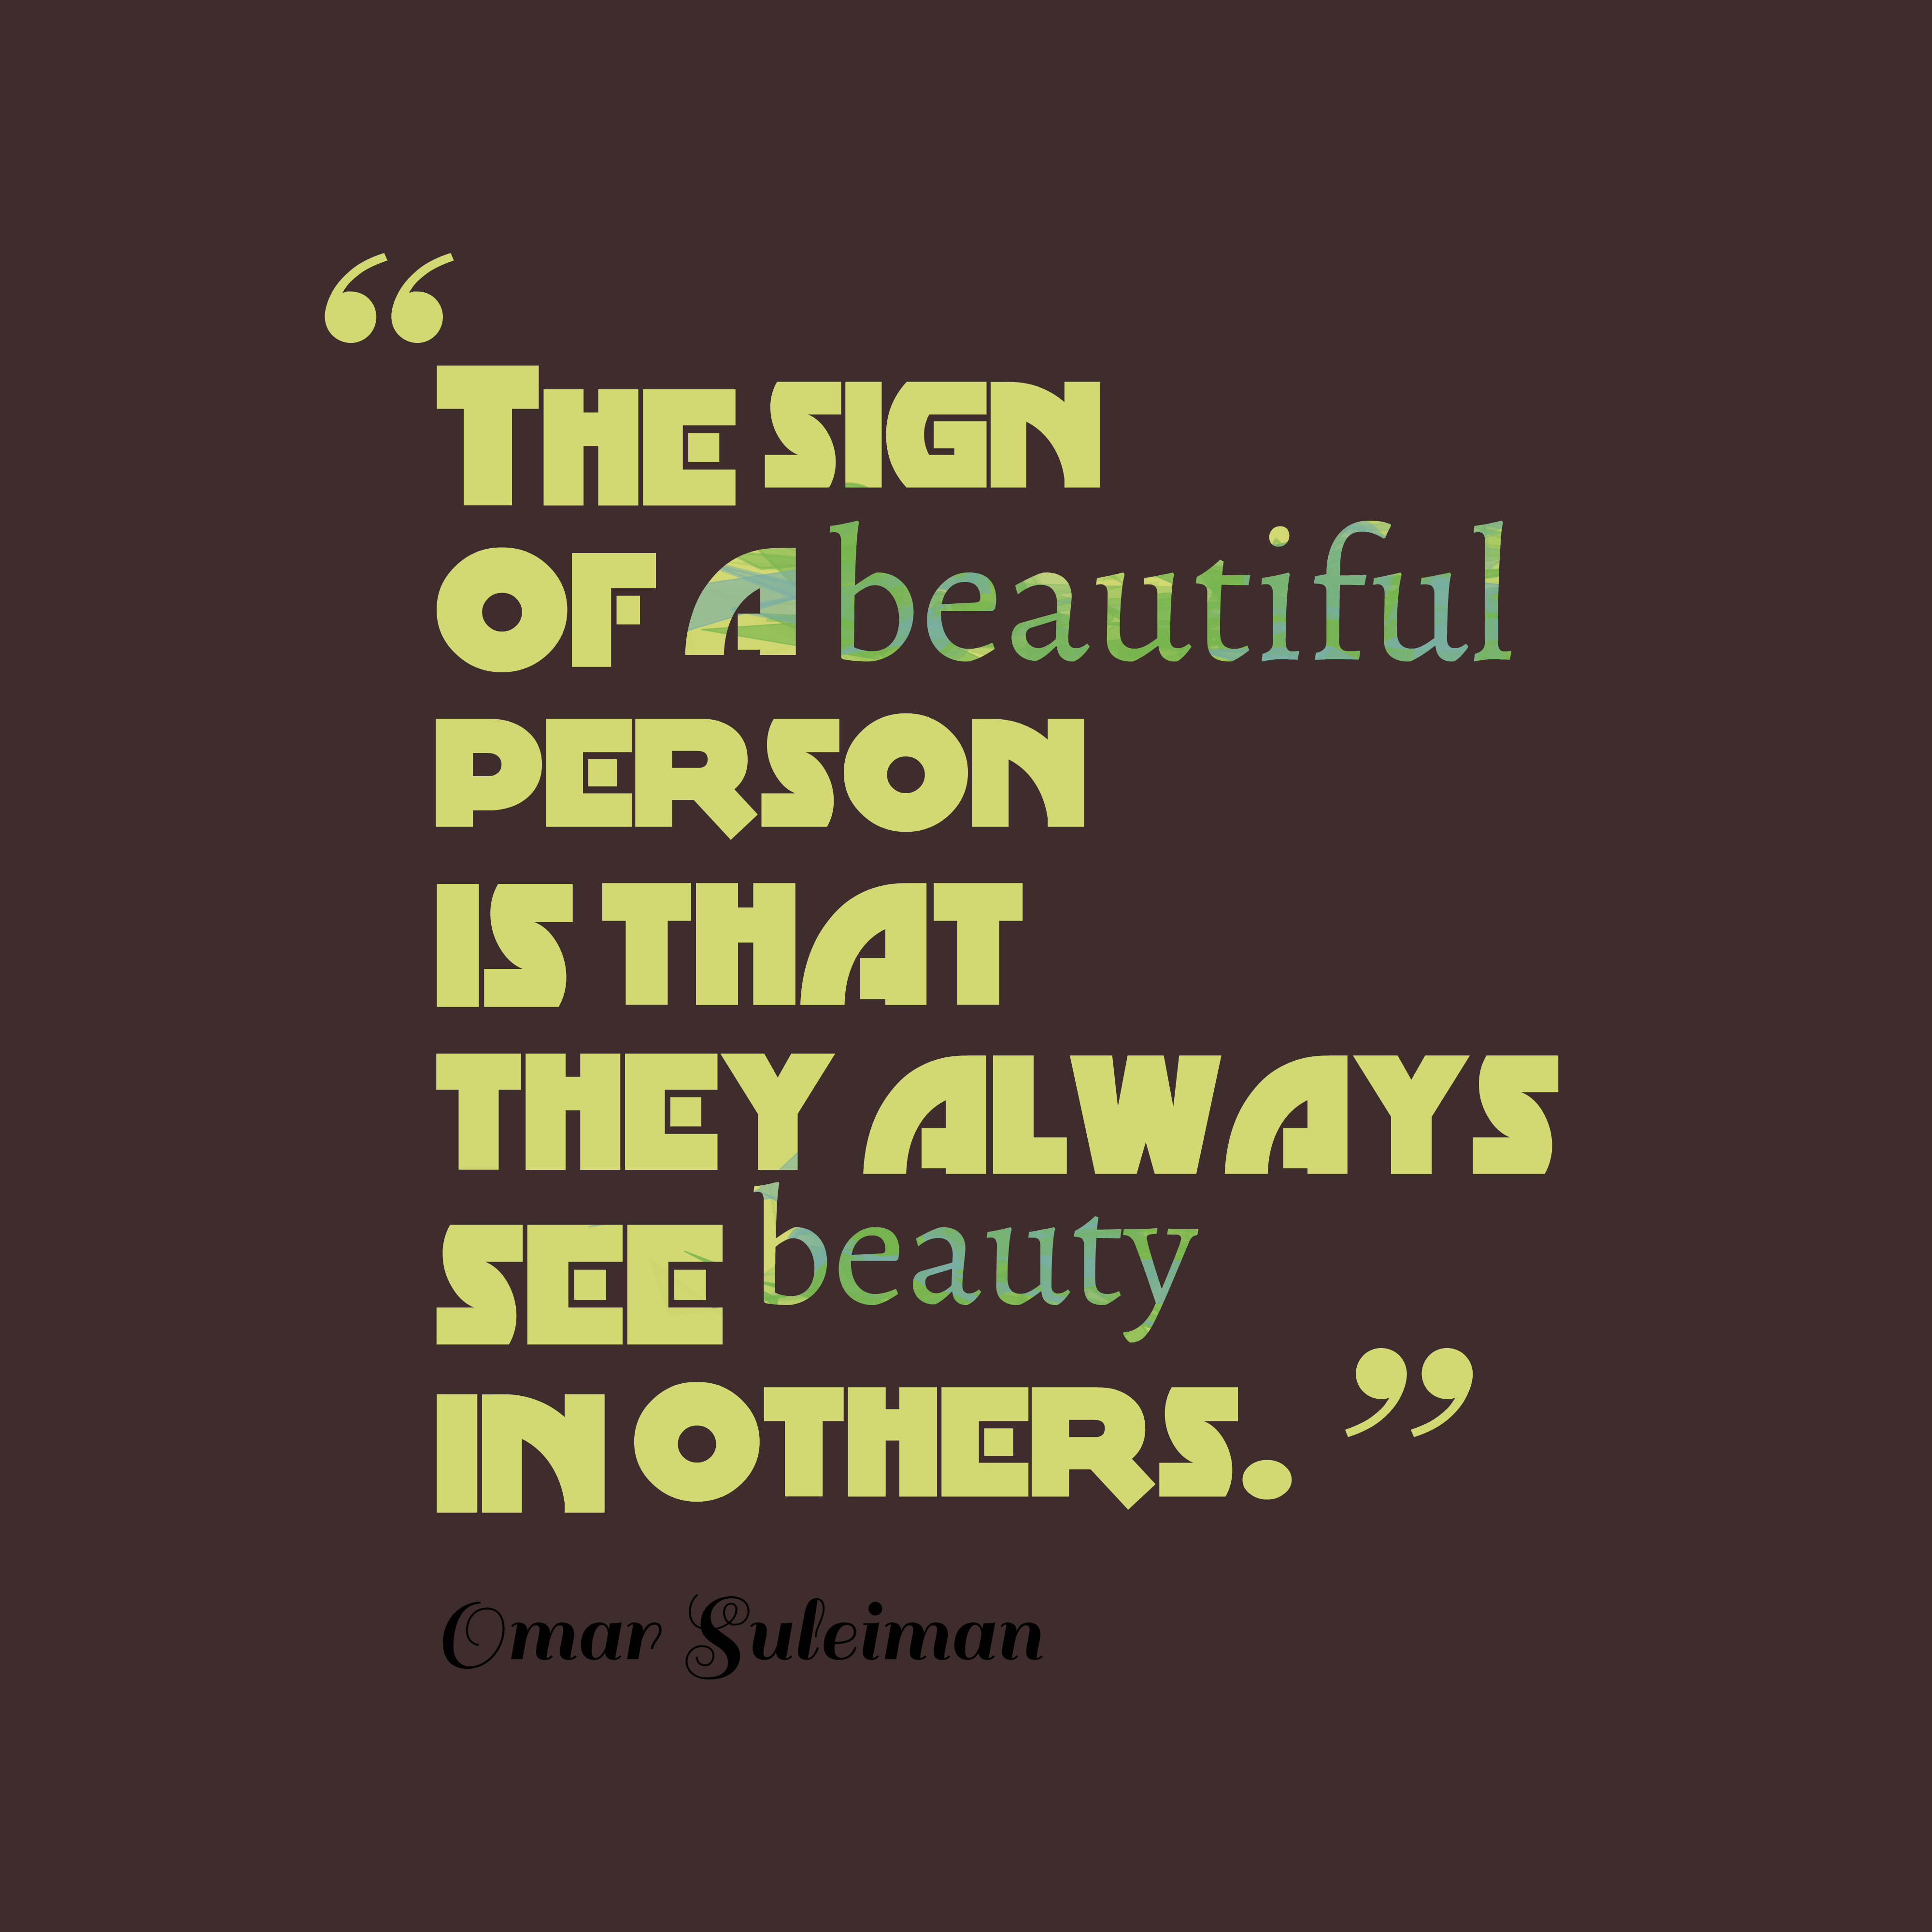 Quotes image of The sign of a beautiful person is that they always see beauty in others.